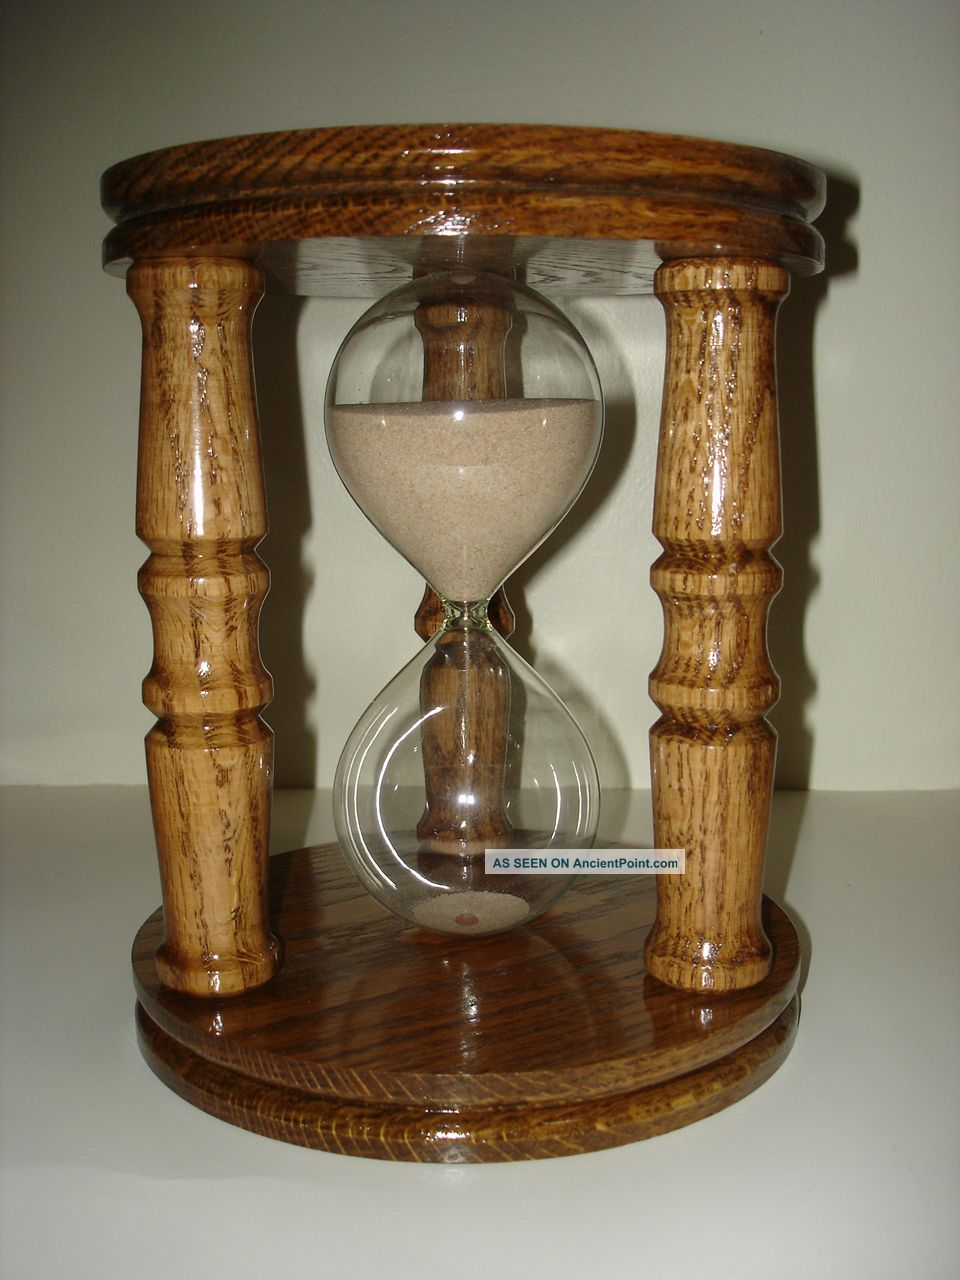 Oak 9 Inch 60 Minute Sand Hourglass Other photo